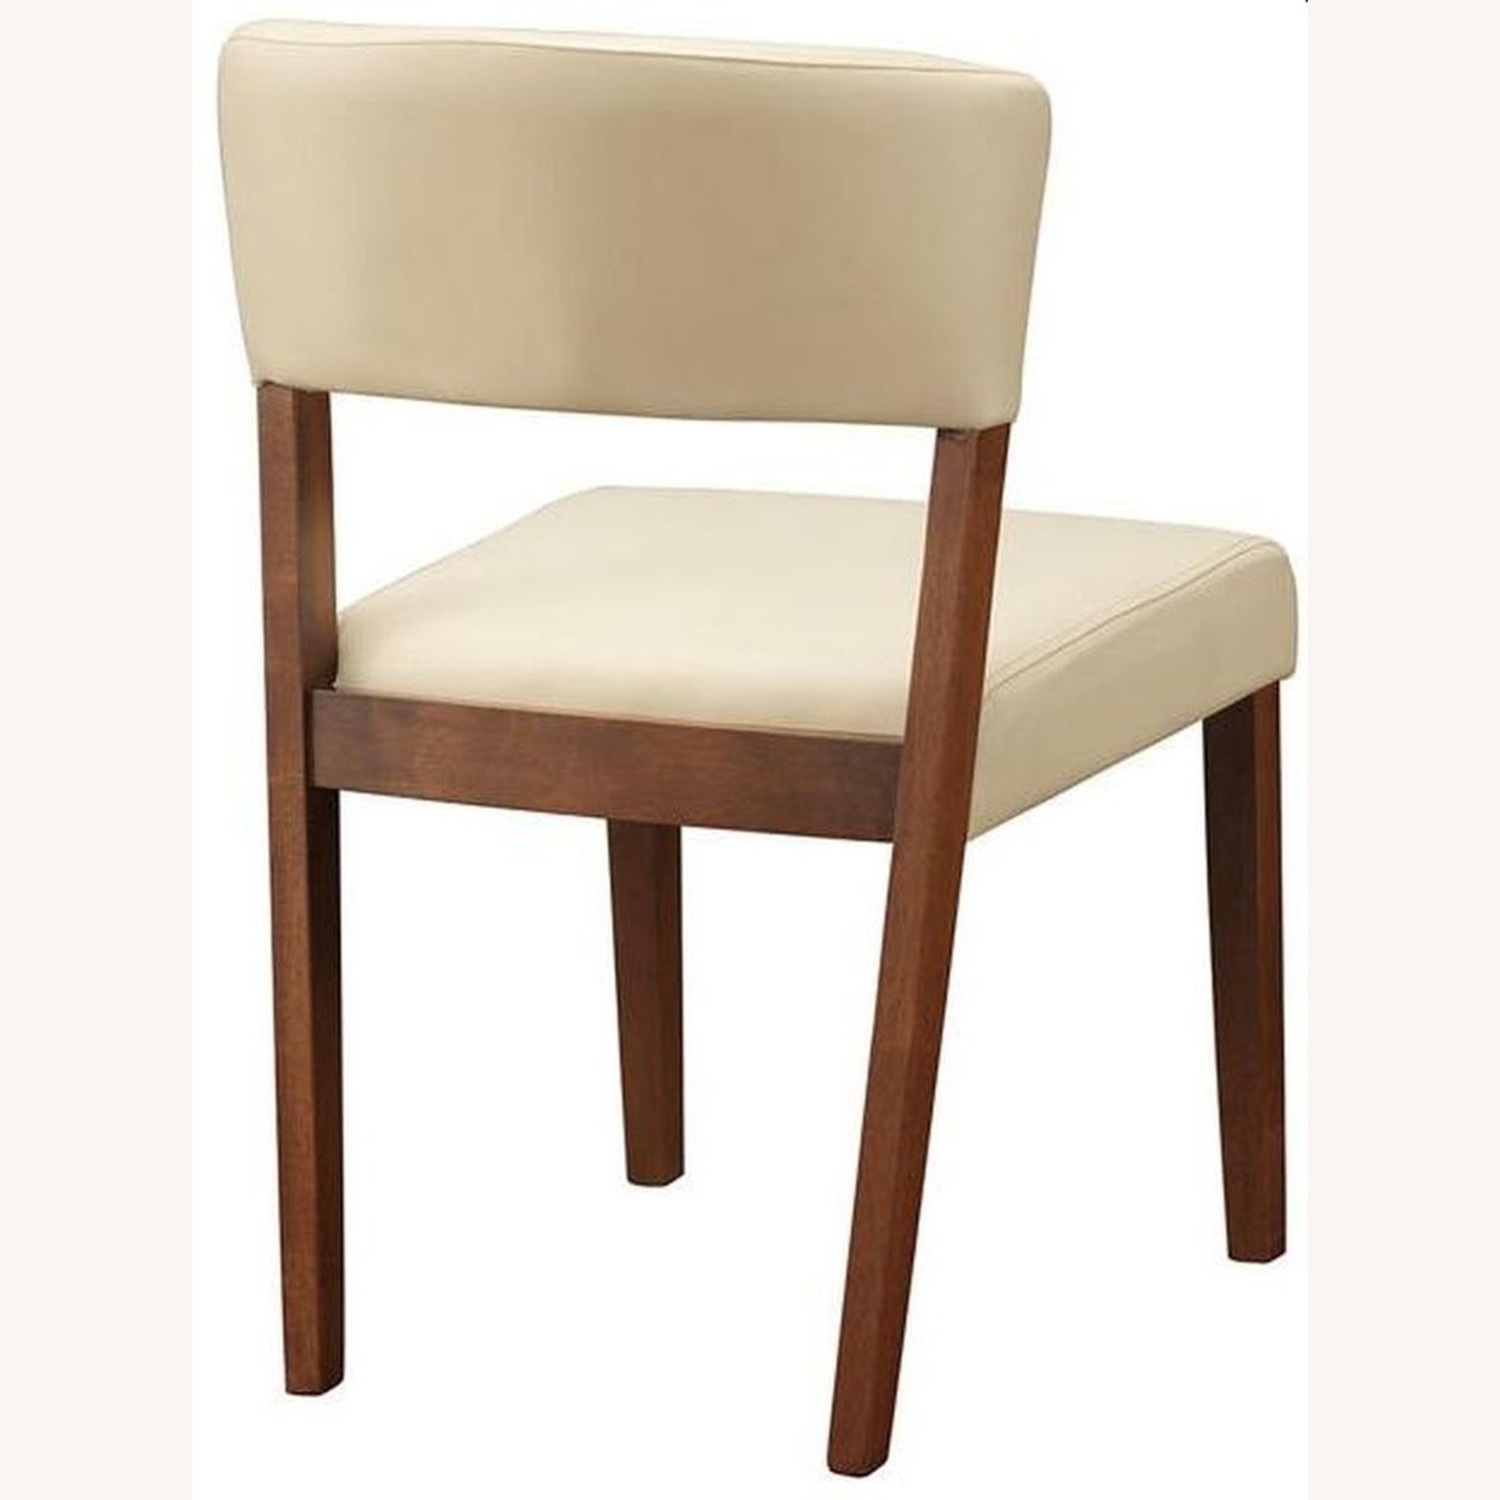 Retro Side Chair In Nutmeg & Cream Leatherette - image-2